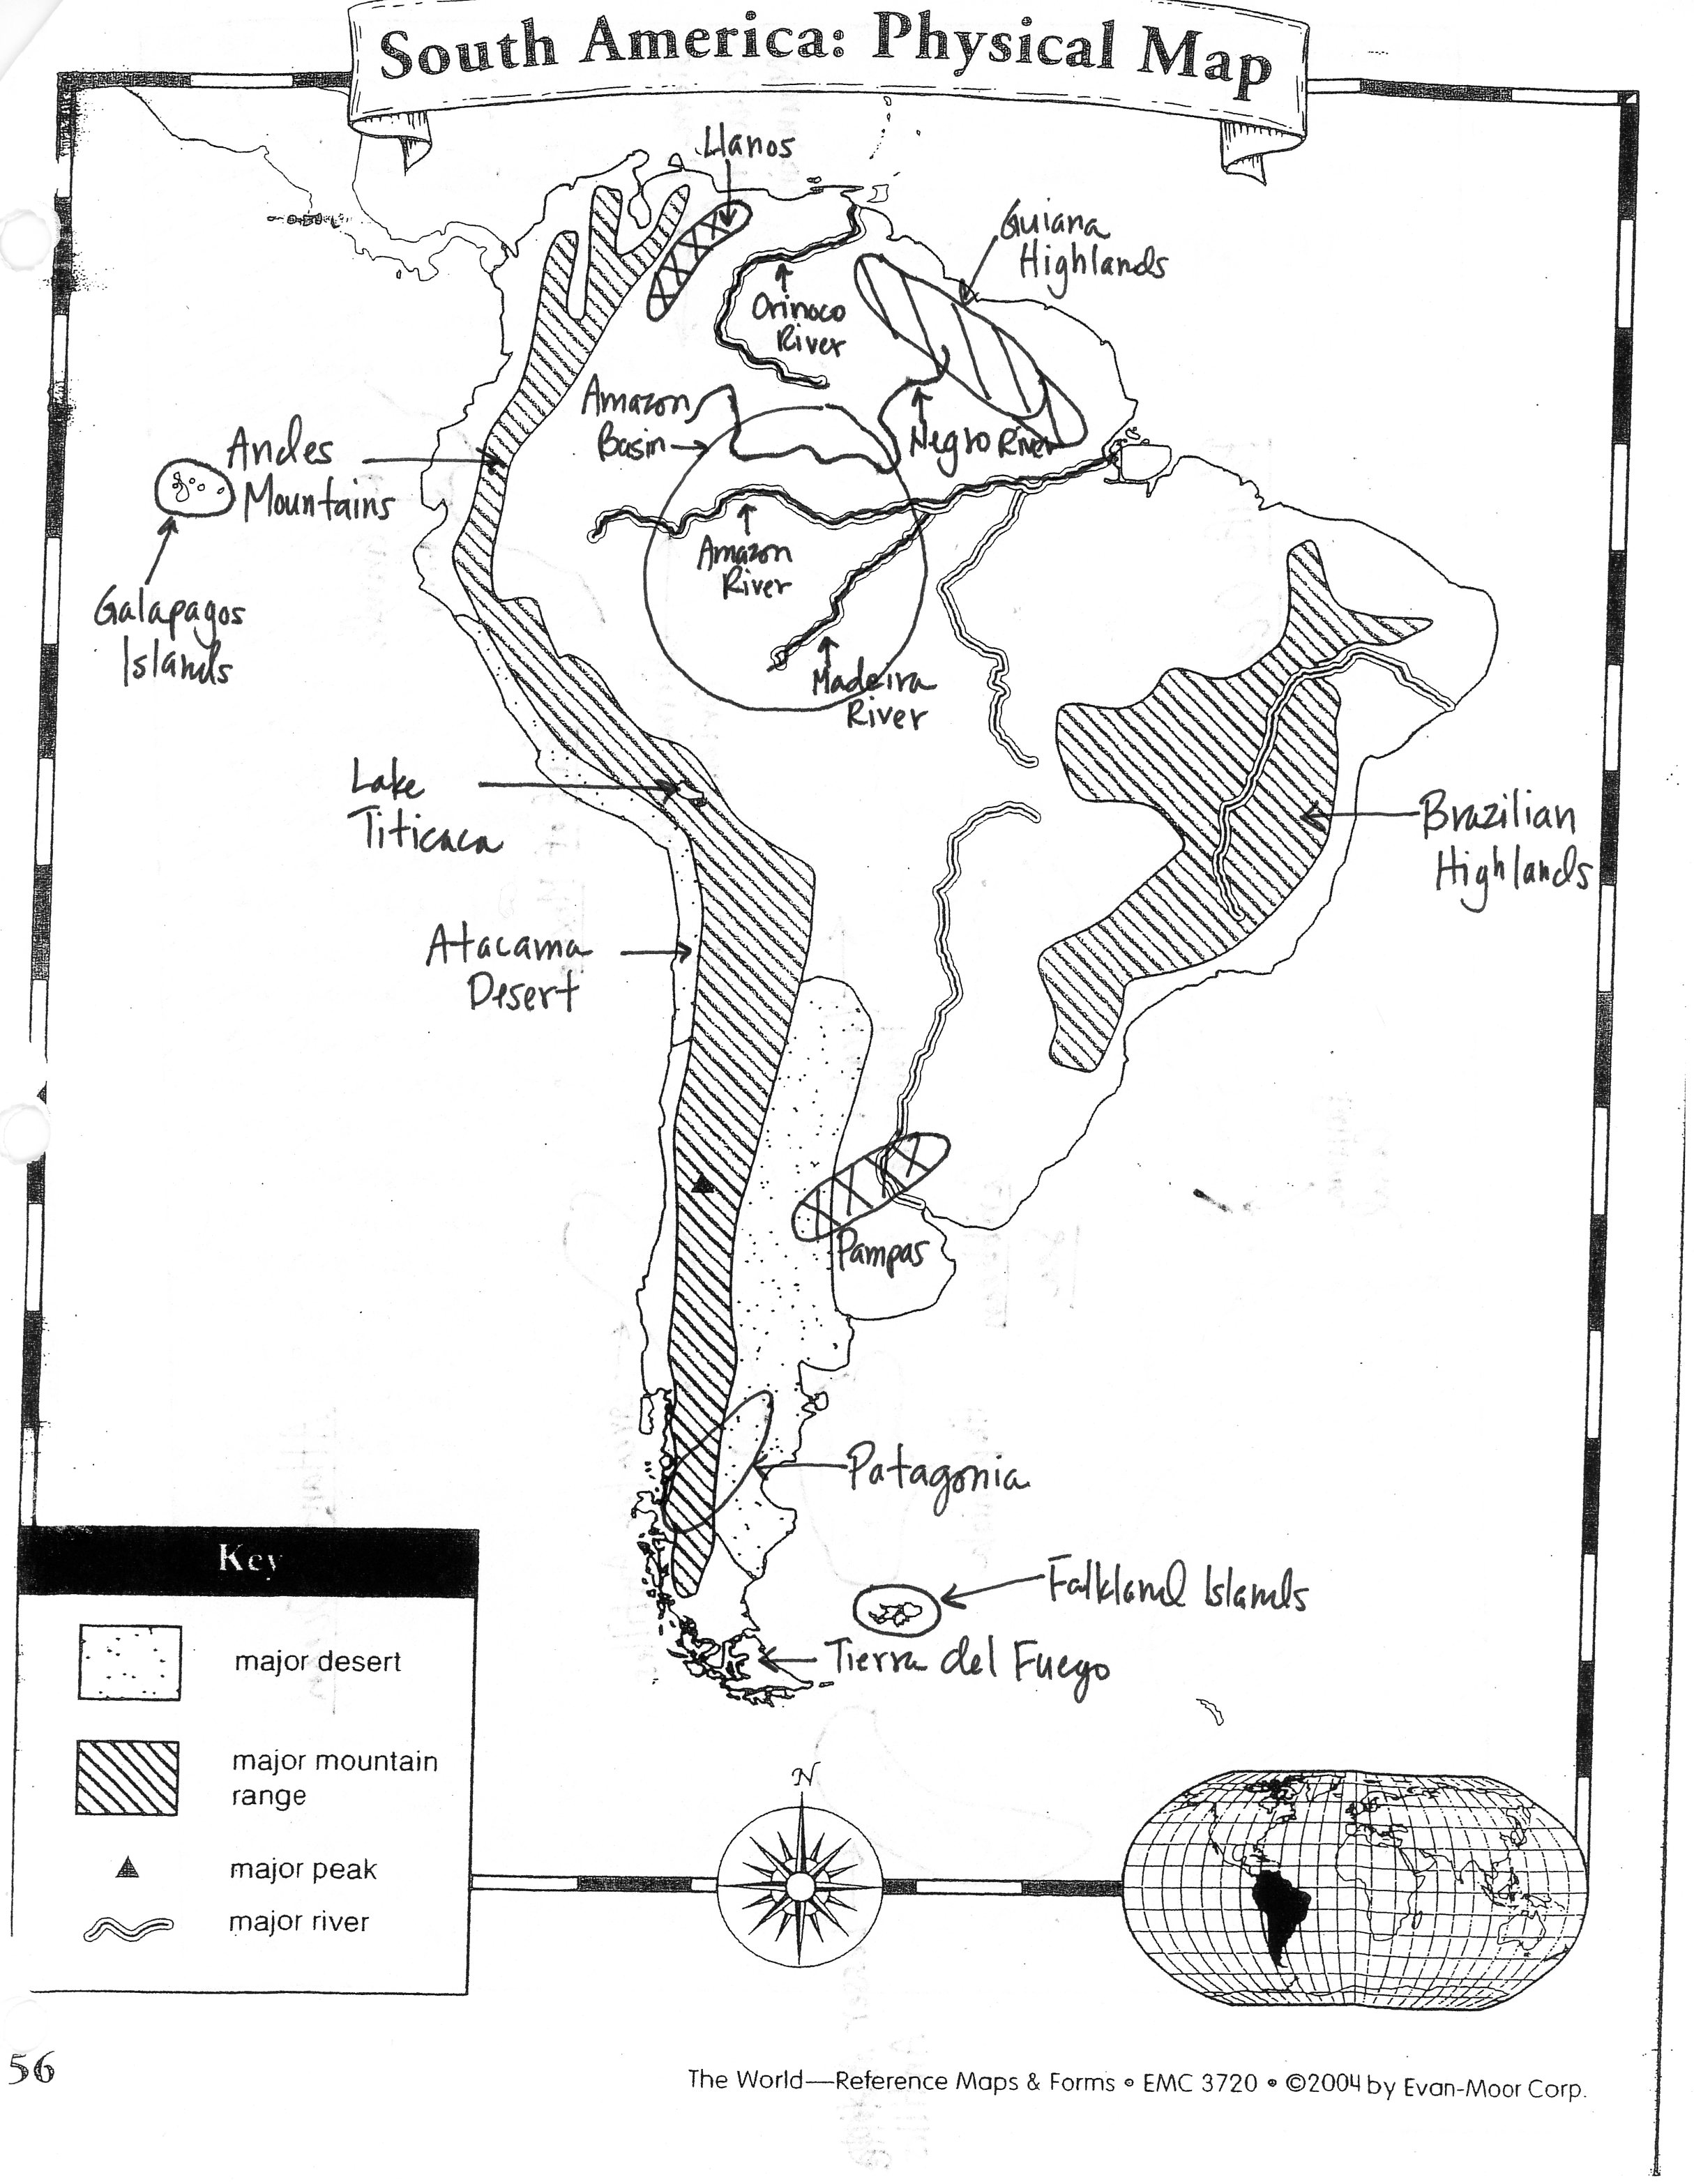 Latin America Physical Maps - Mr. Hammett - World Geography